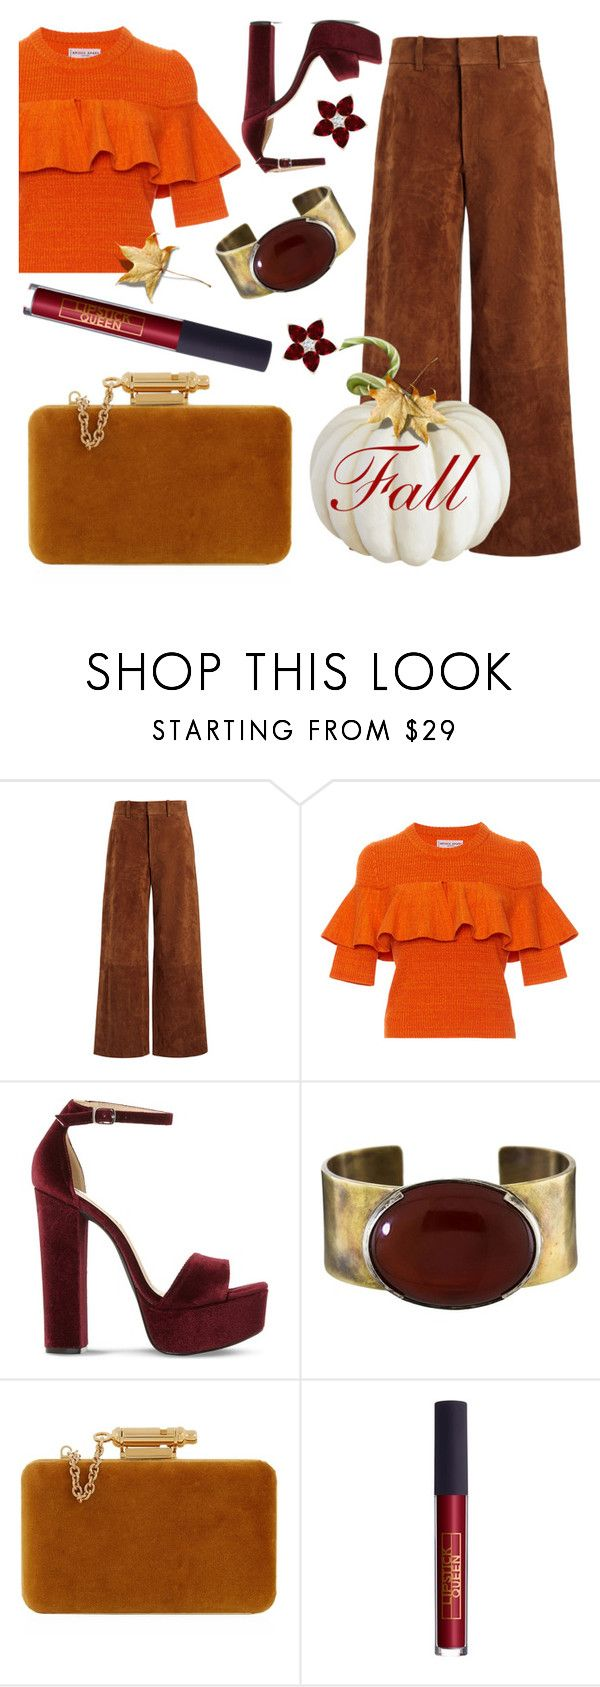 """""""IDK"""" by stephanie-mac ❤ liked on Polyvore featuring Joseph, Apiece Apart, Steve Madden, Orduna Design, Sophie Hulme and Lipstick Queen"""